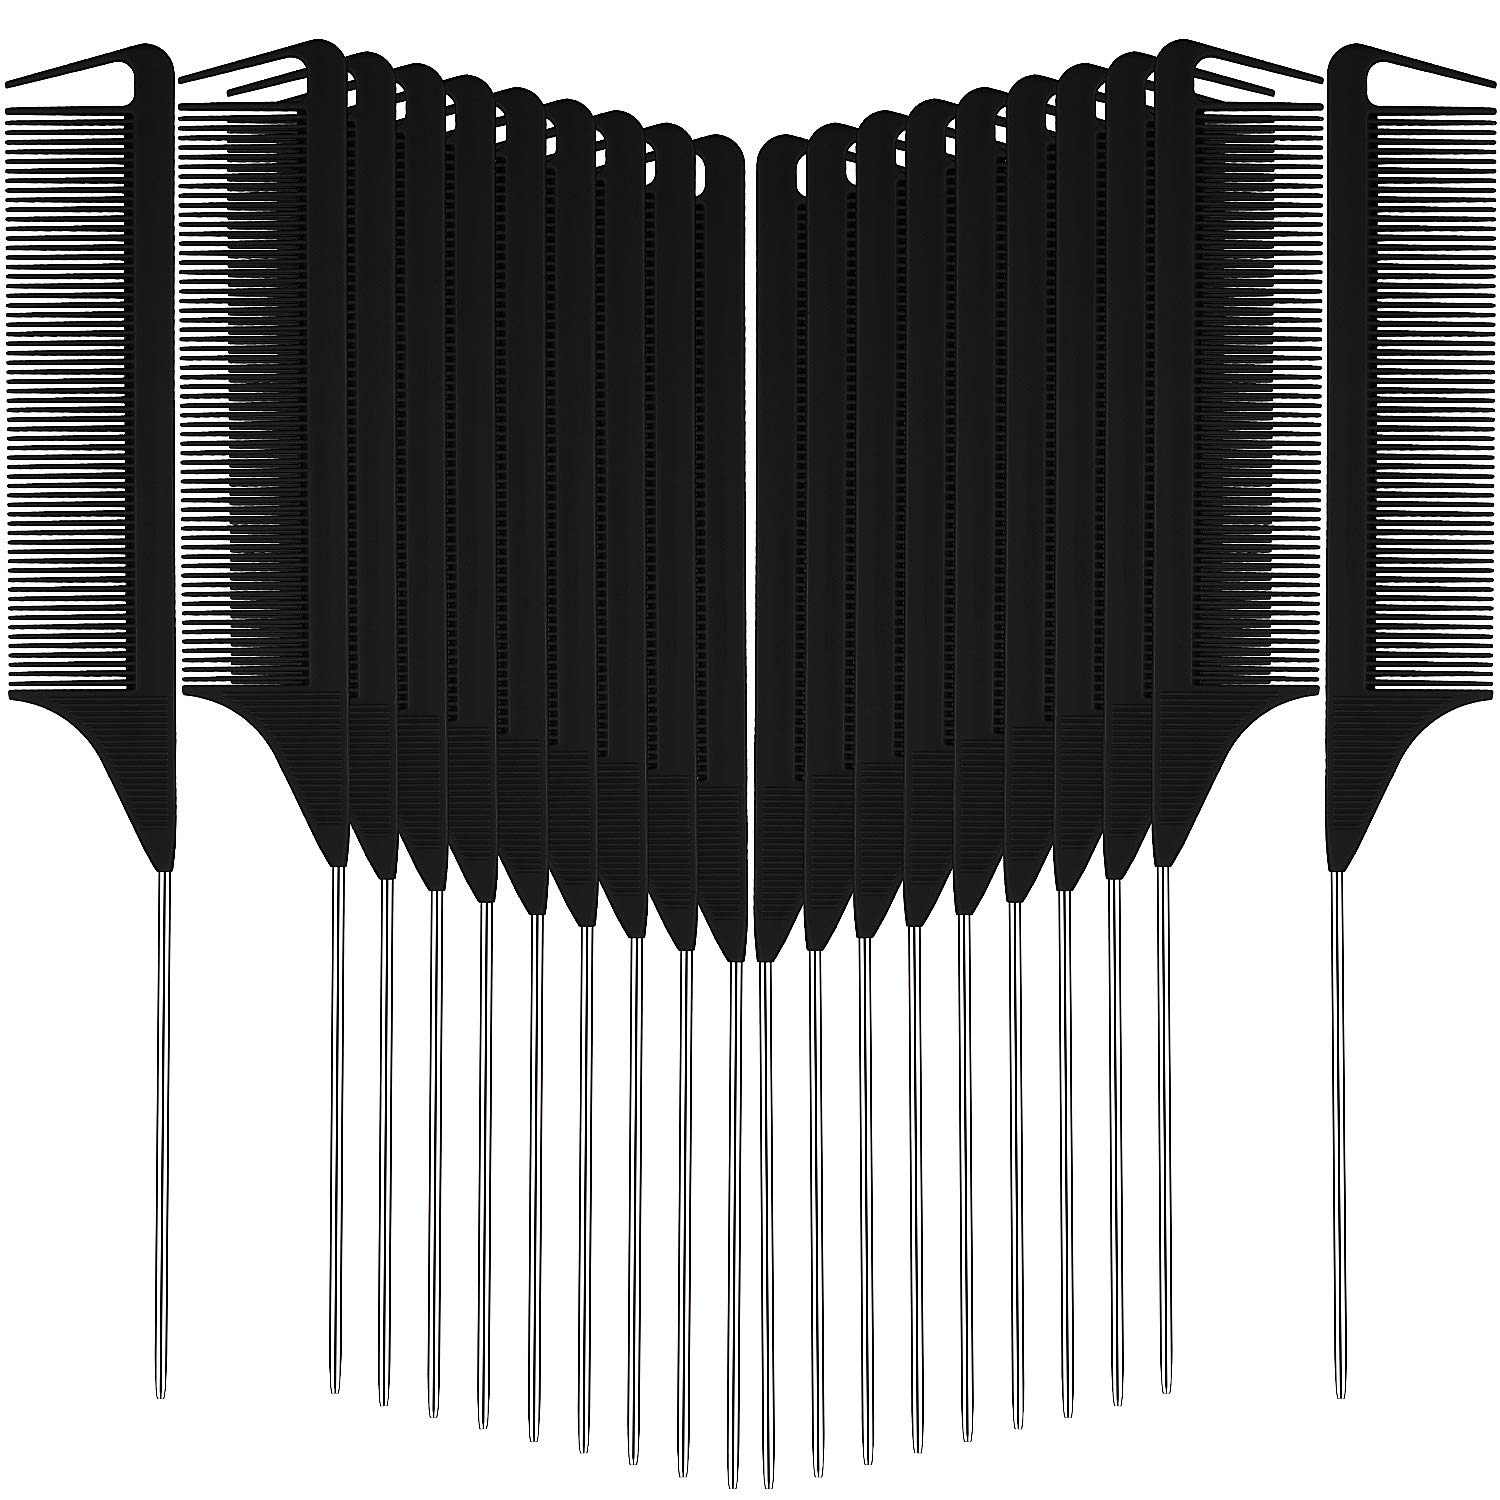 24 Pieces Parting Comb for Braids Hair Parting Comb Steel Pin Rat Tail Carbon Fiber Heat Resistant Teasing Combs for Braids Hair Styling Beauty Tools (Black)